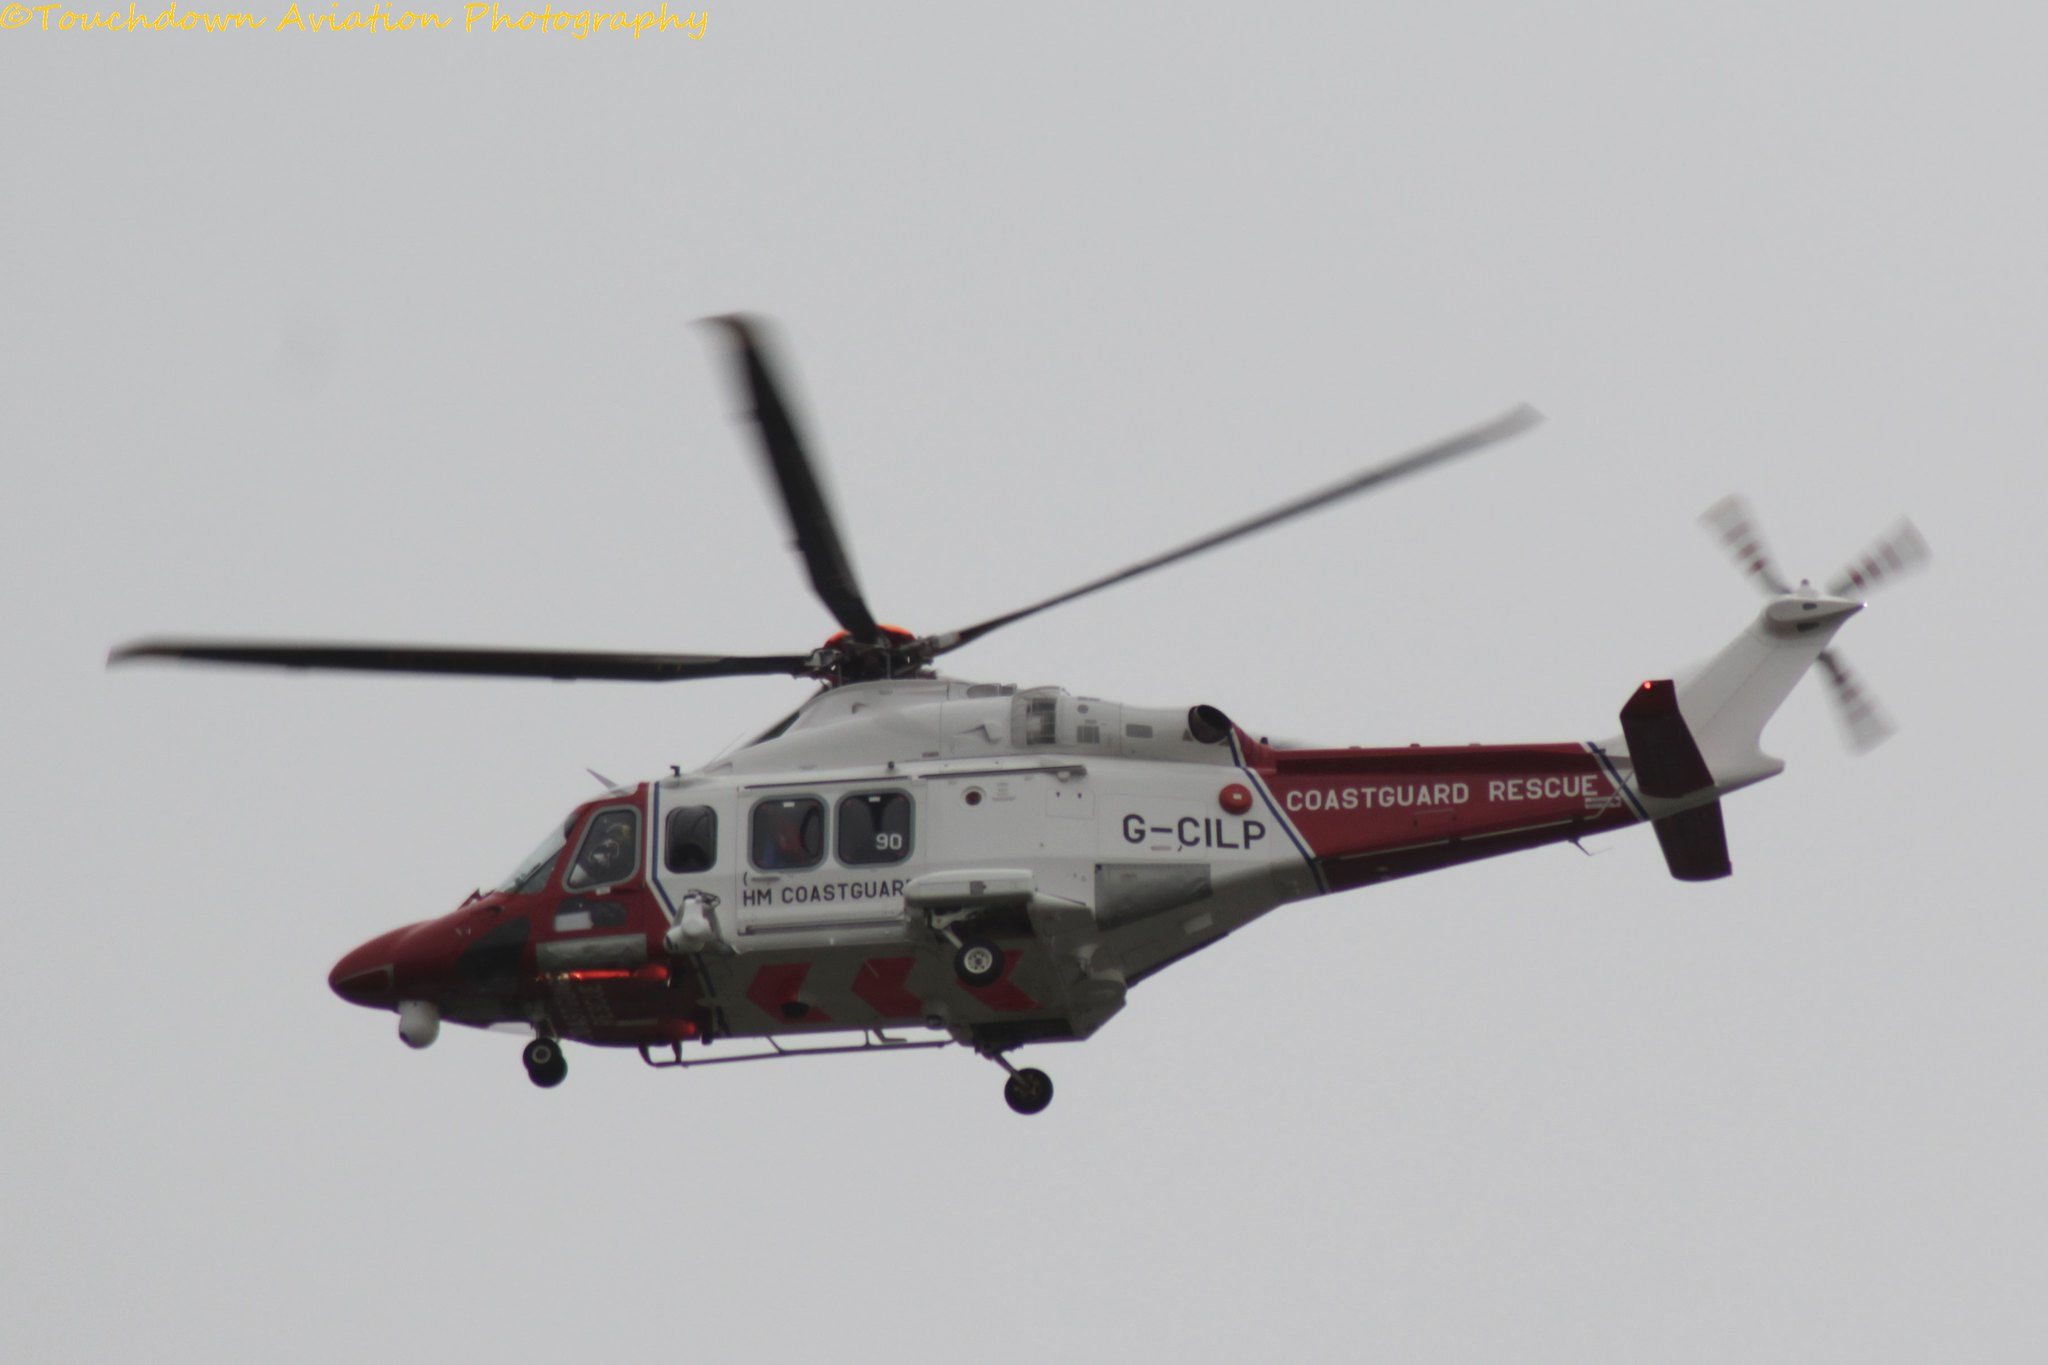 UK SAR AgustaWestland AW139 G-CILP 28SEP16